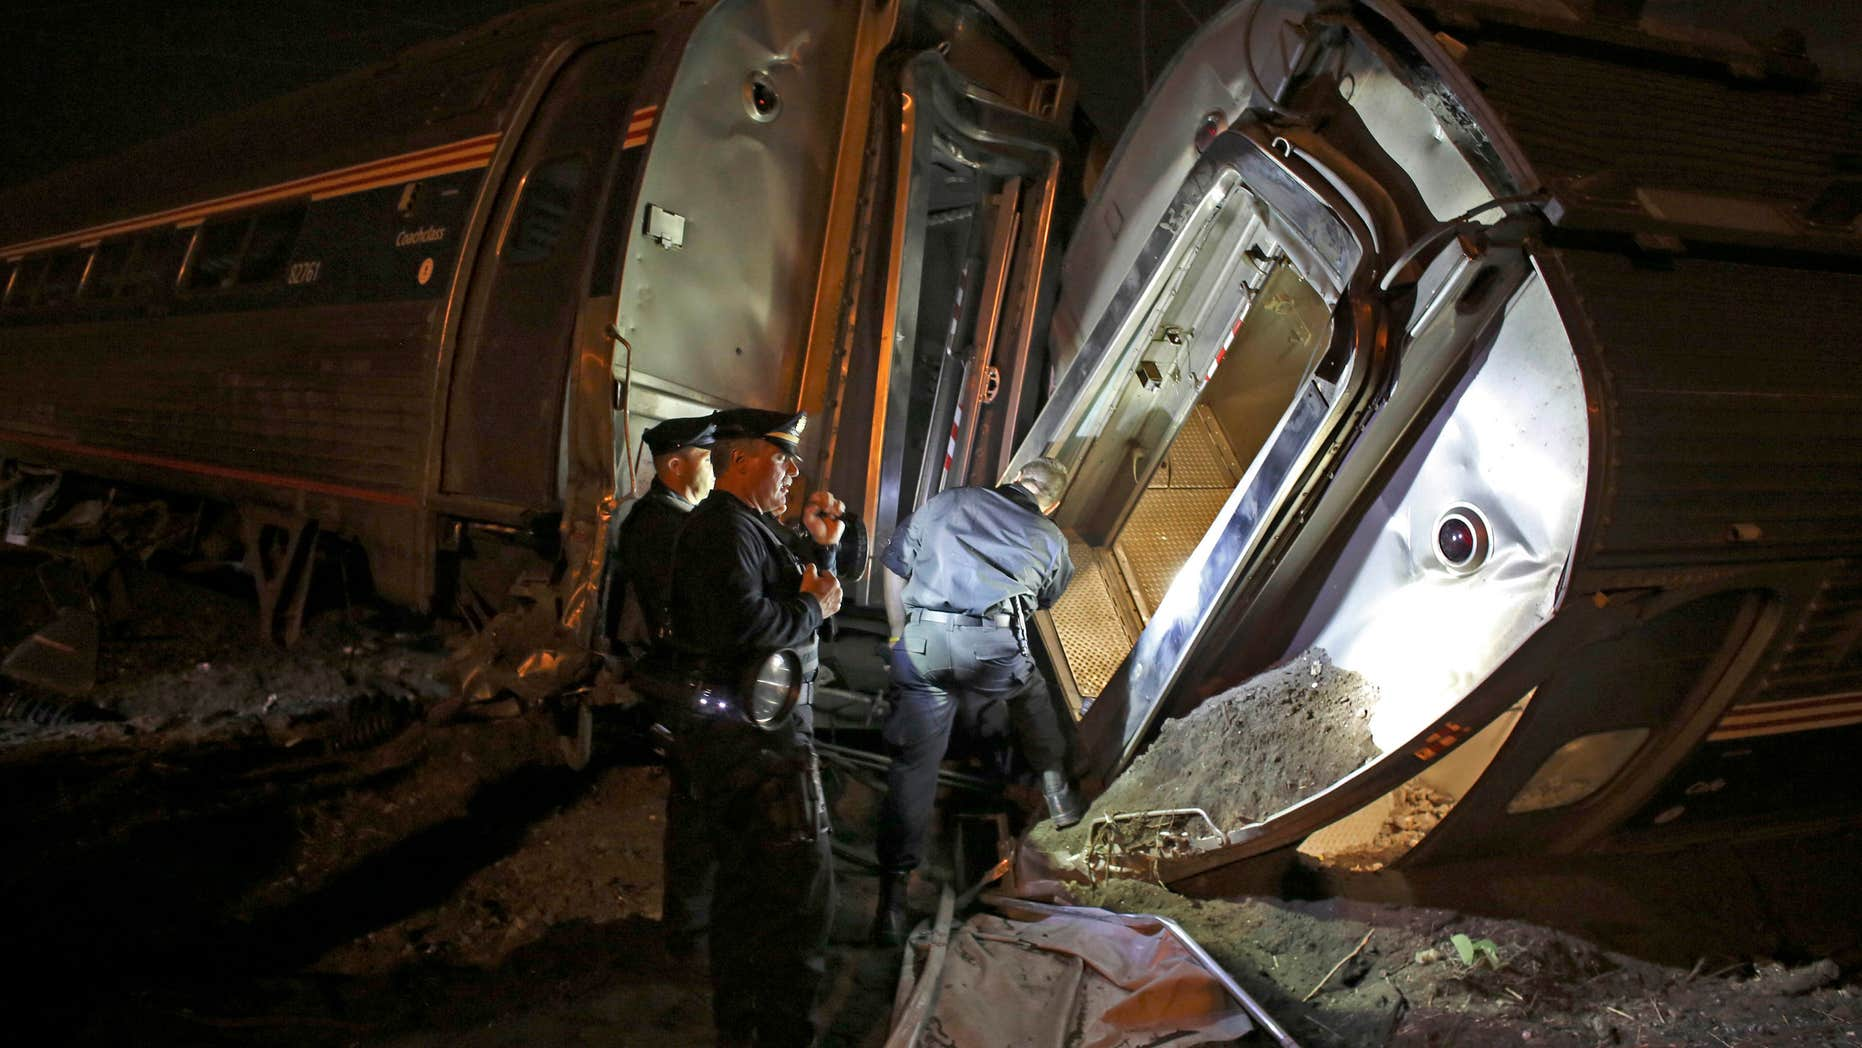 May 12, 2015: Emergency personnel work the scene of a train wreck An Amtrak train headed to New York City derailed and crashed in Philadelphia.